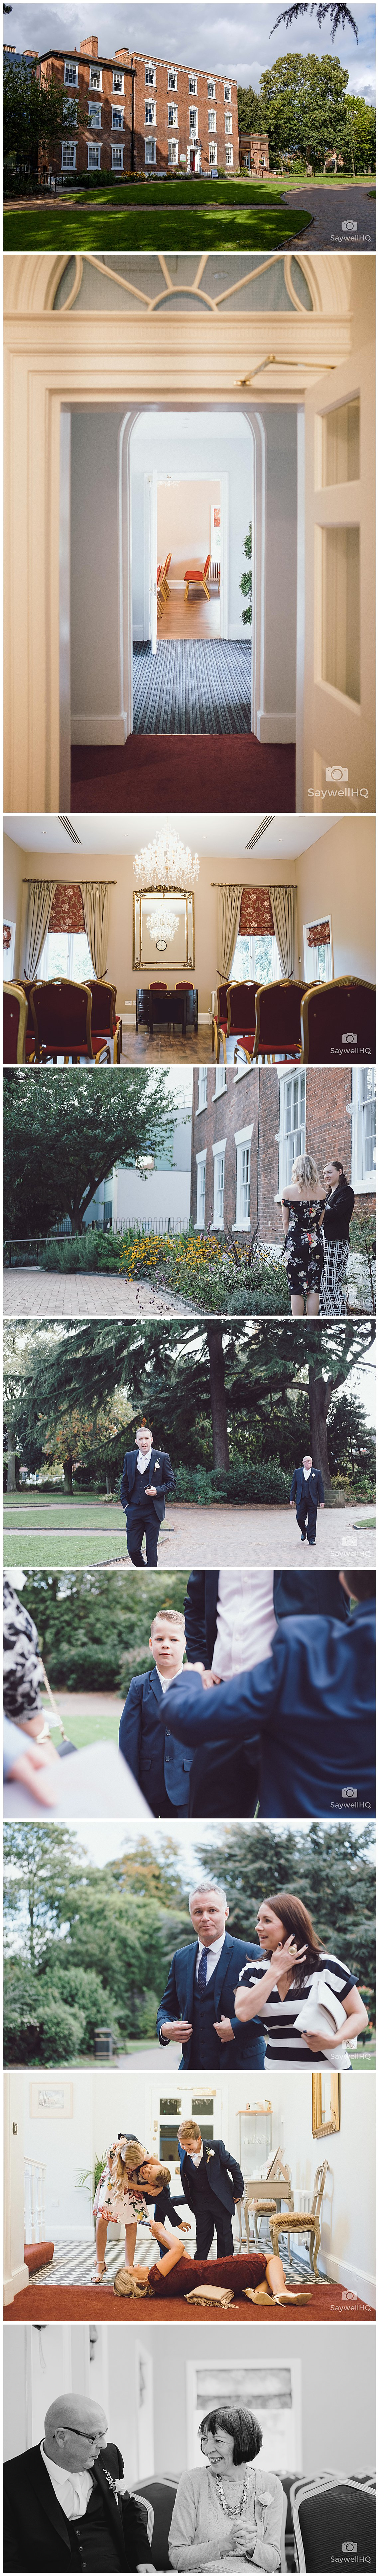 West Bridgford Hall Wedding Photography - venue and guest arrivals